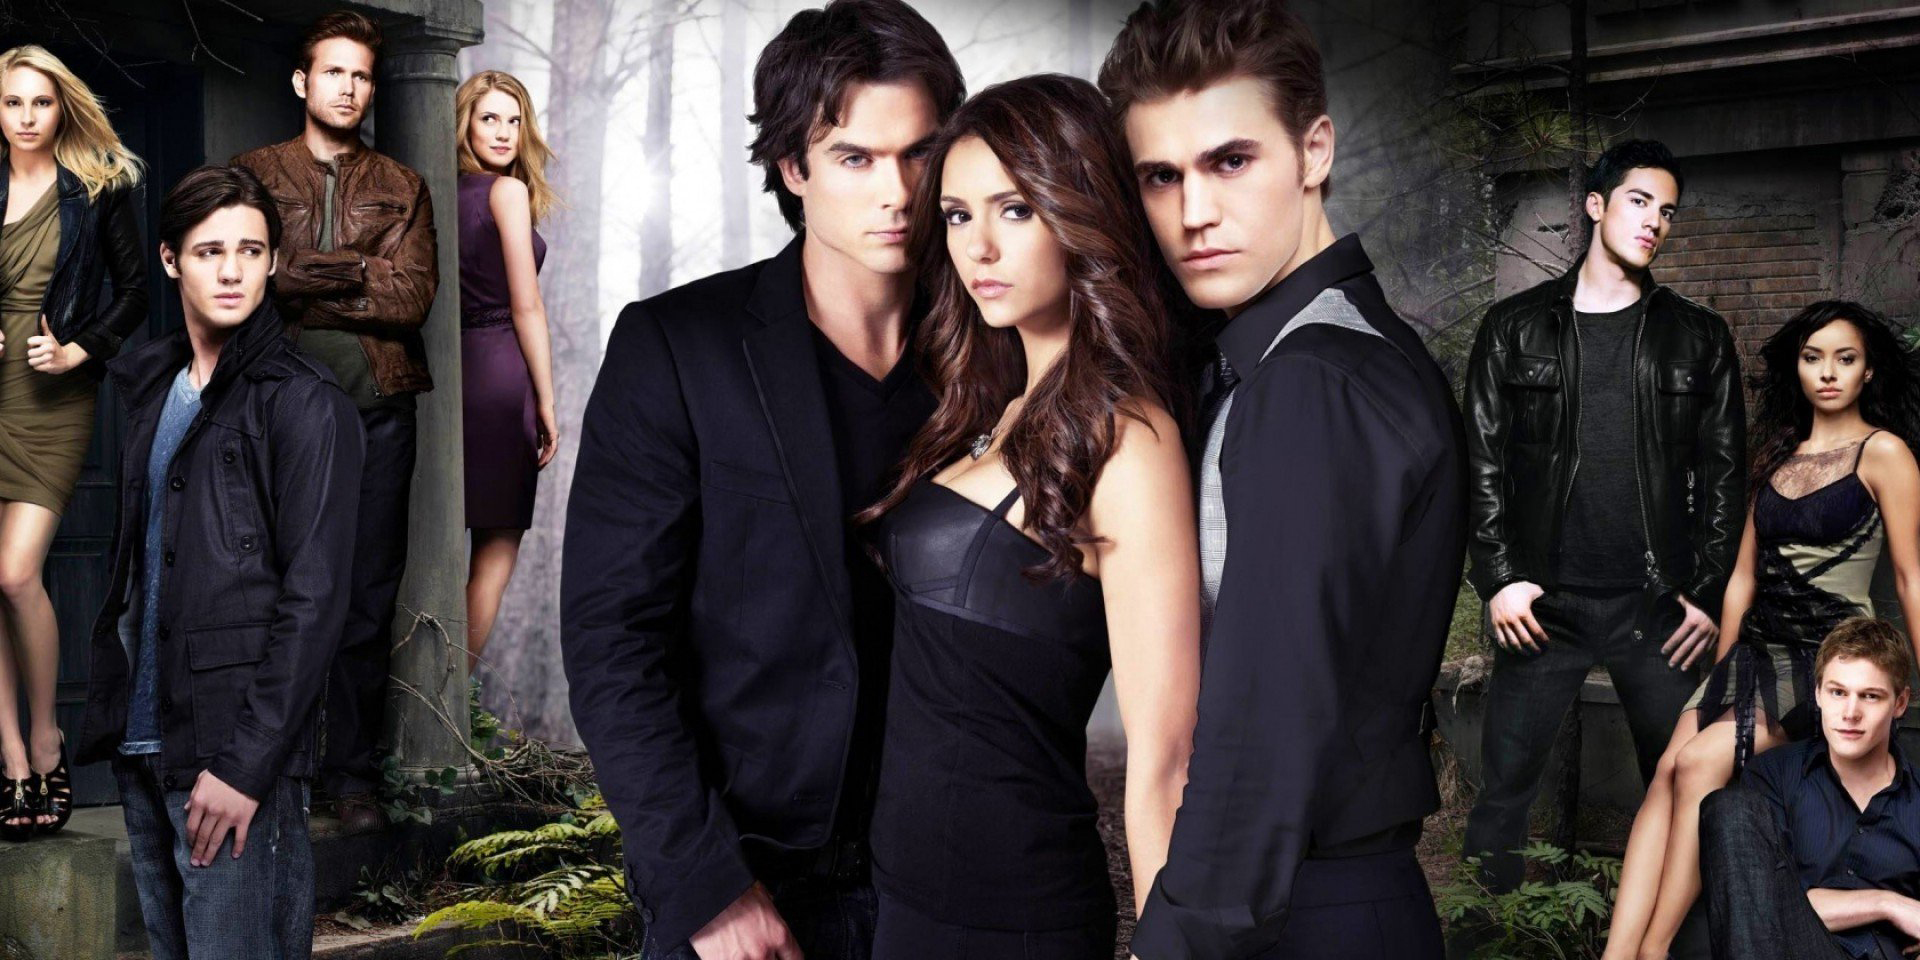 Vampire Diaries Stars Hookup In Real Life